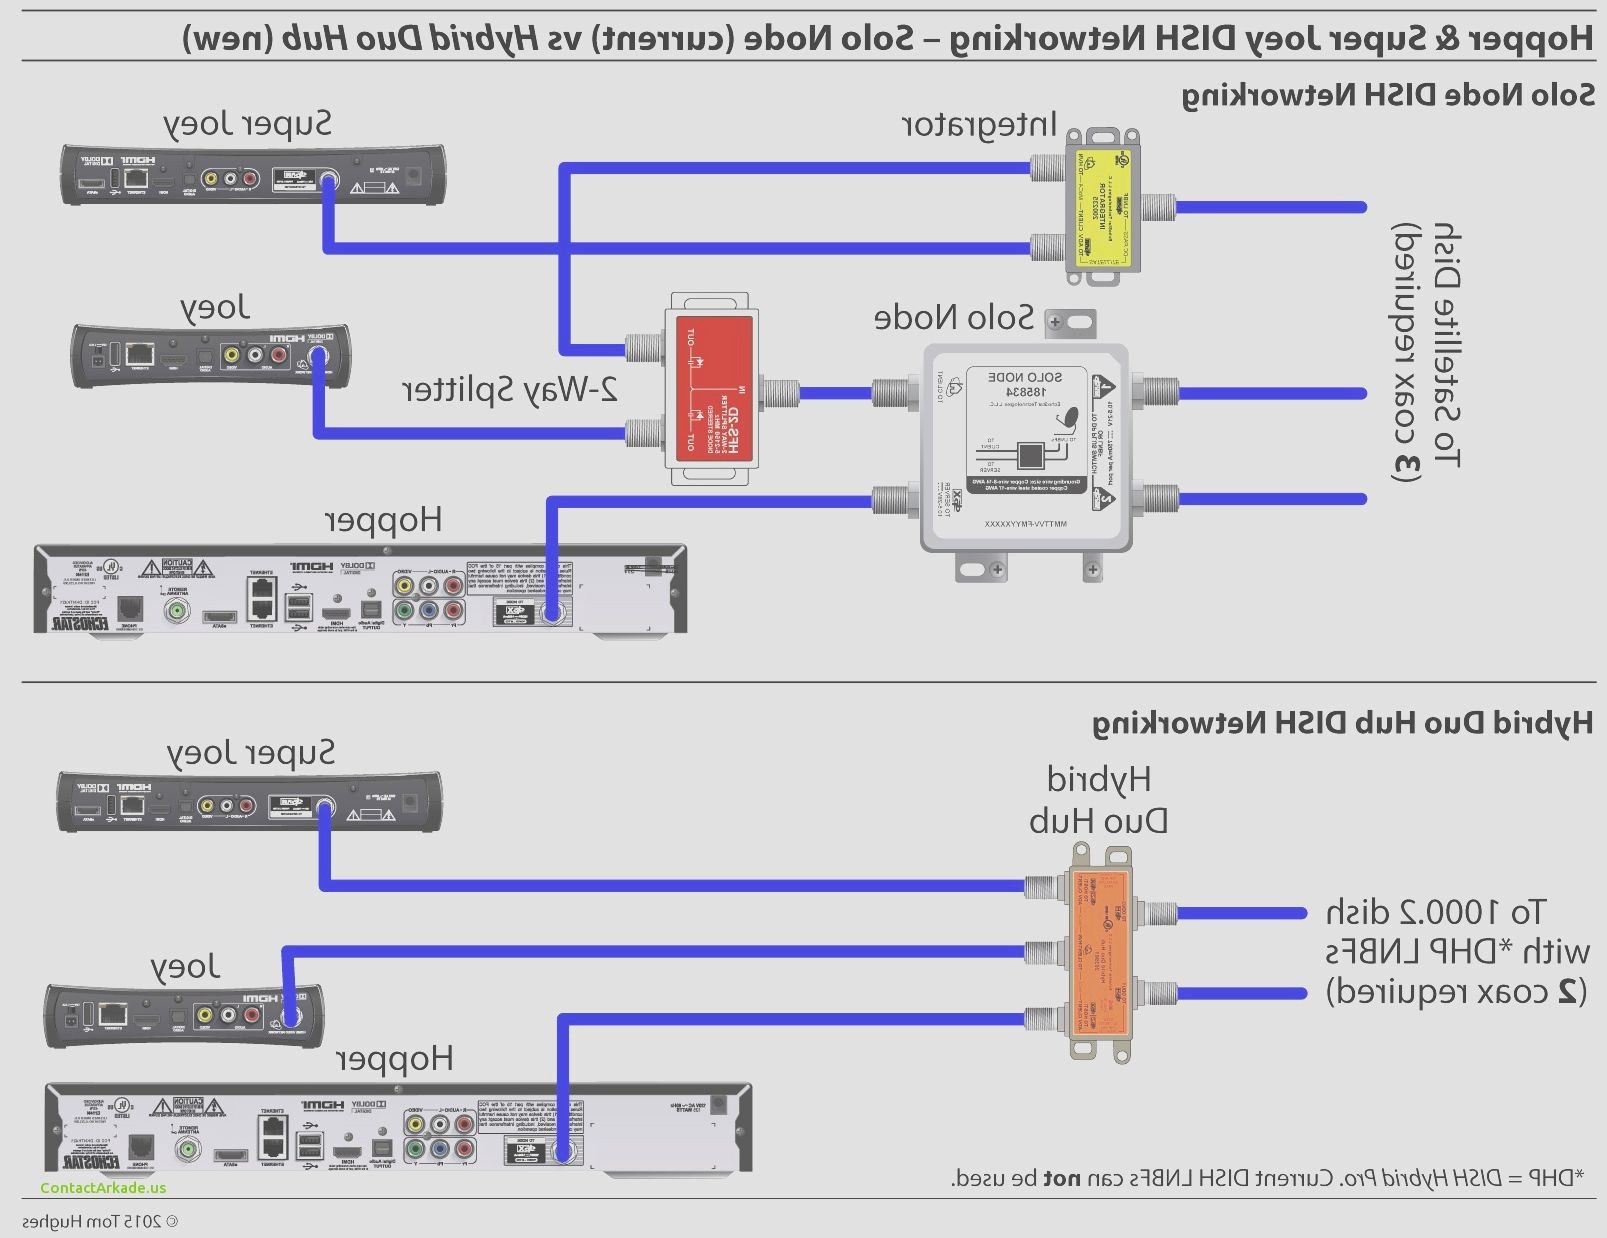 cat 6 wiring diagram for wall plates Collection-Ethernet Wiring Diagram Cat6 Best Cat 6 Wiring Diagram for Wall Plates 10-n